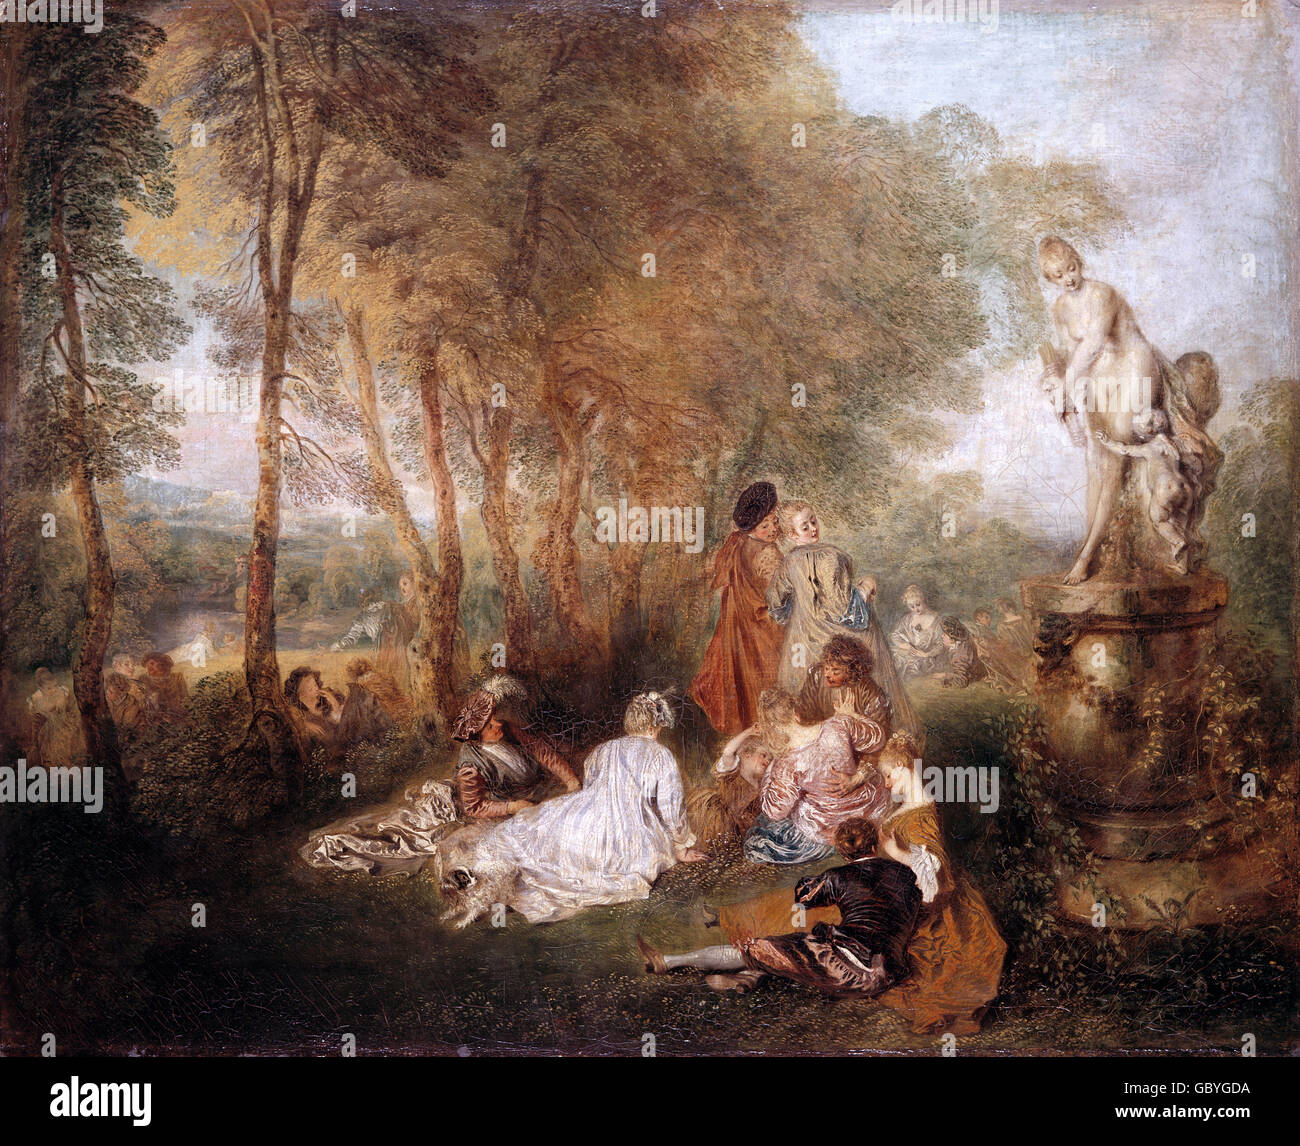 French Rococo Painting Stock Photos French Rococo Painting Stock - Rococo painting